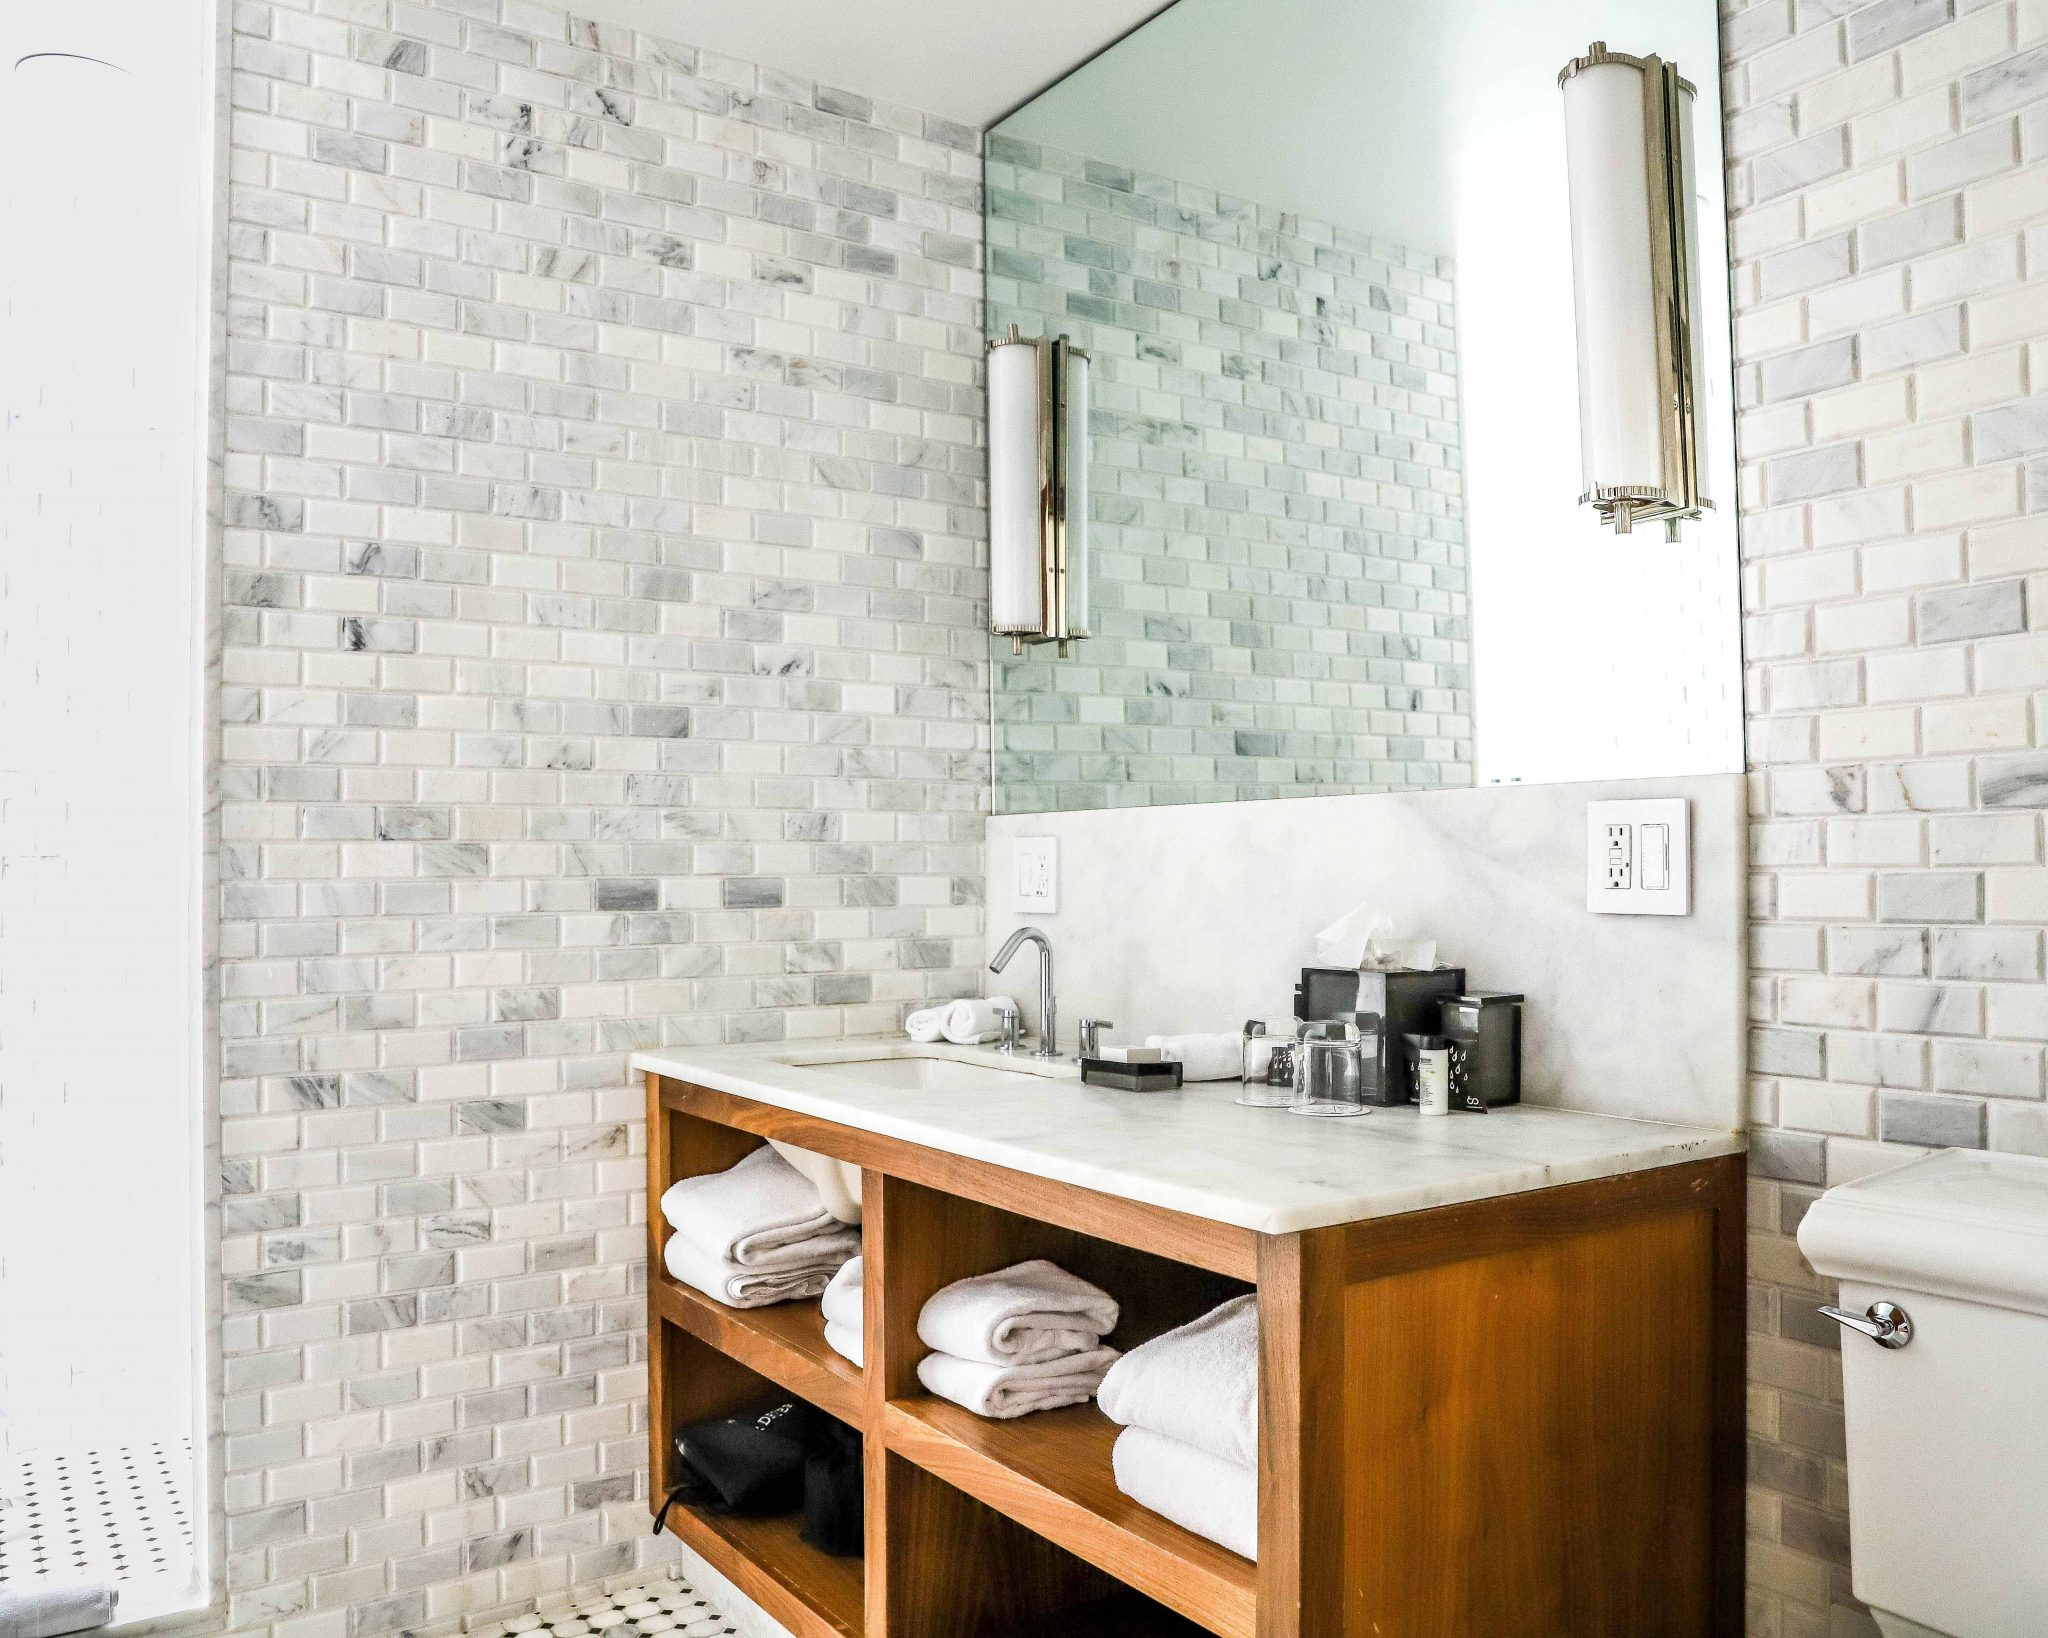 bathroom sink with cubby holes for towel storage and amenities